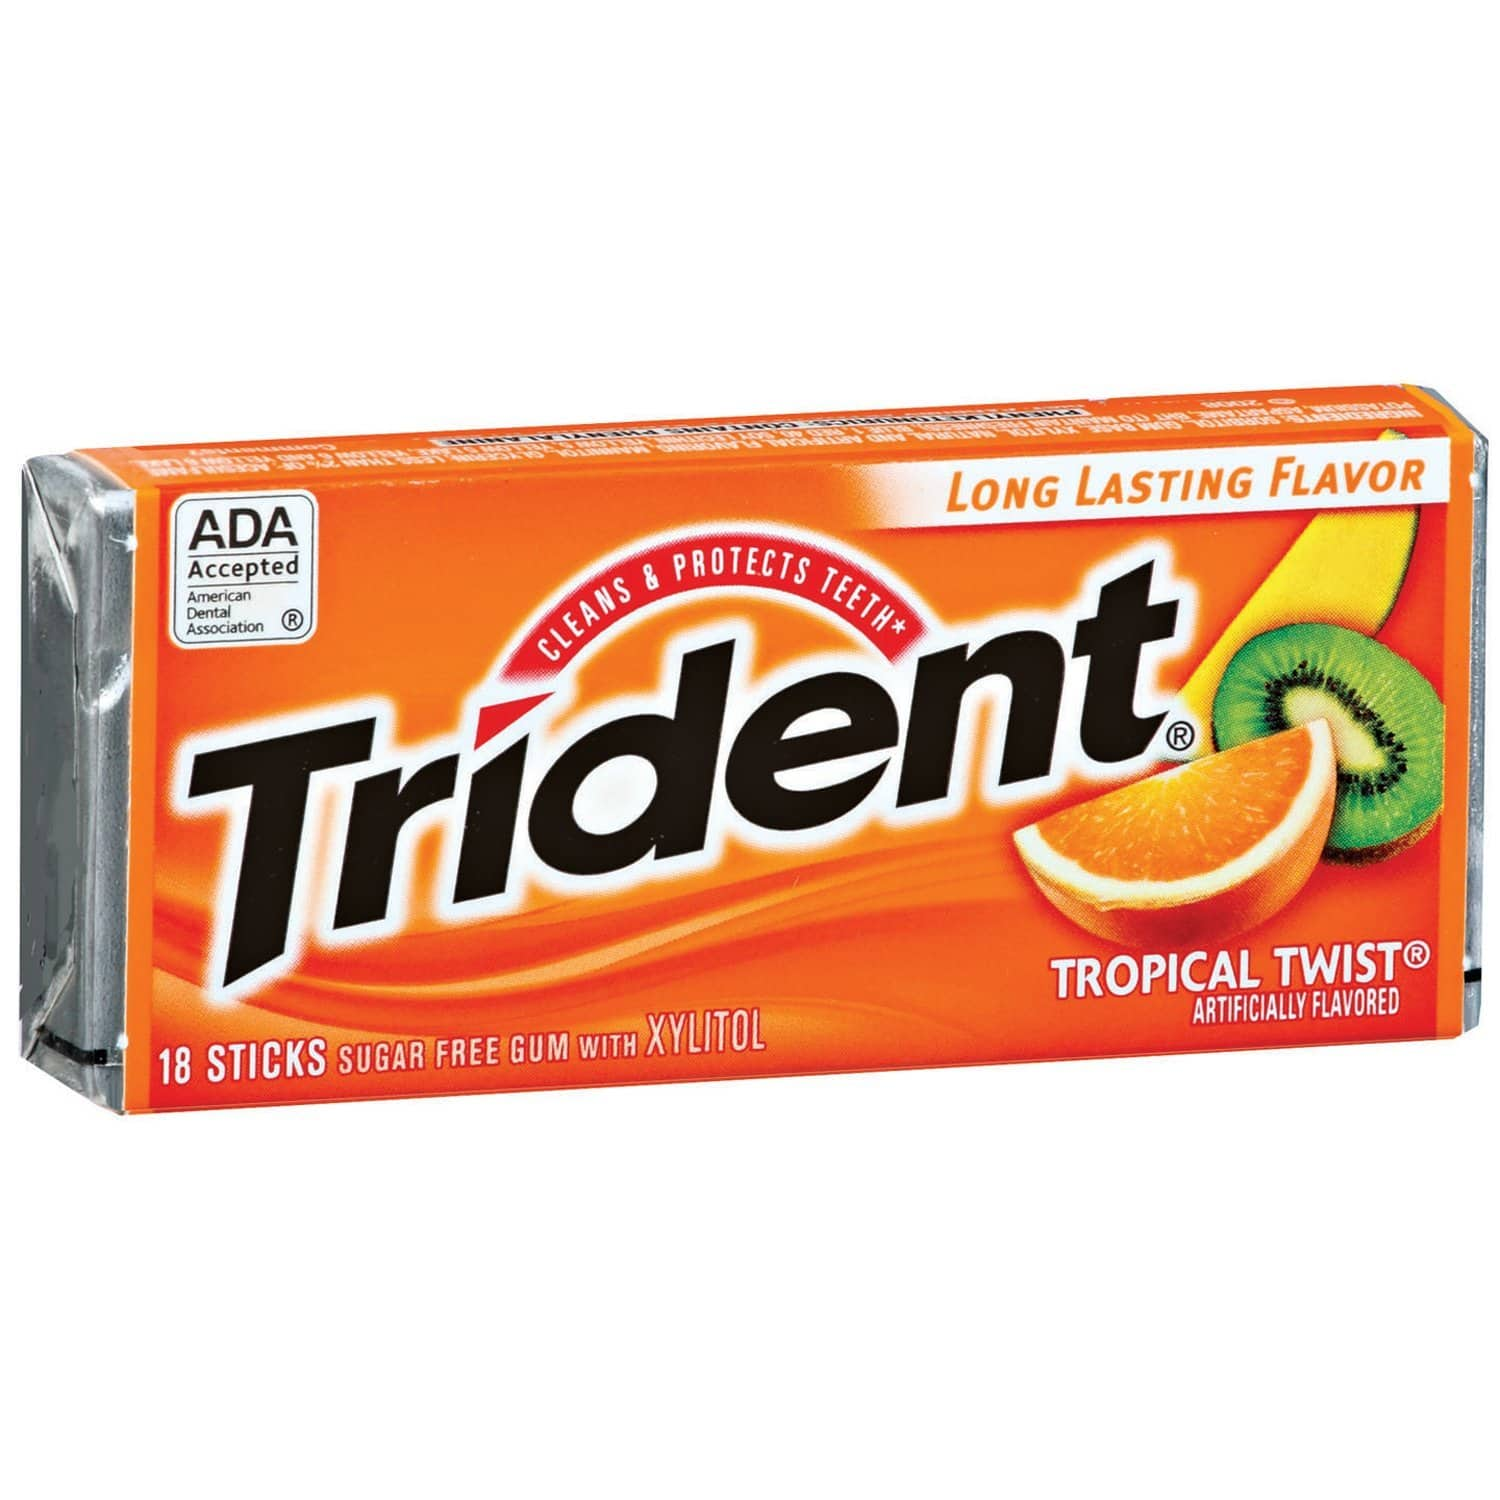 Trident Gum, Tropical Twist, 18-count (Pack of 12) $3.84 + Free S/H @ Amazon